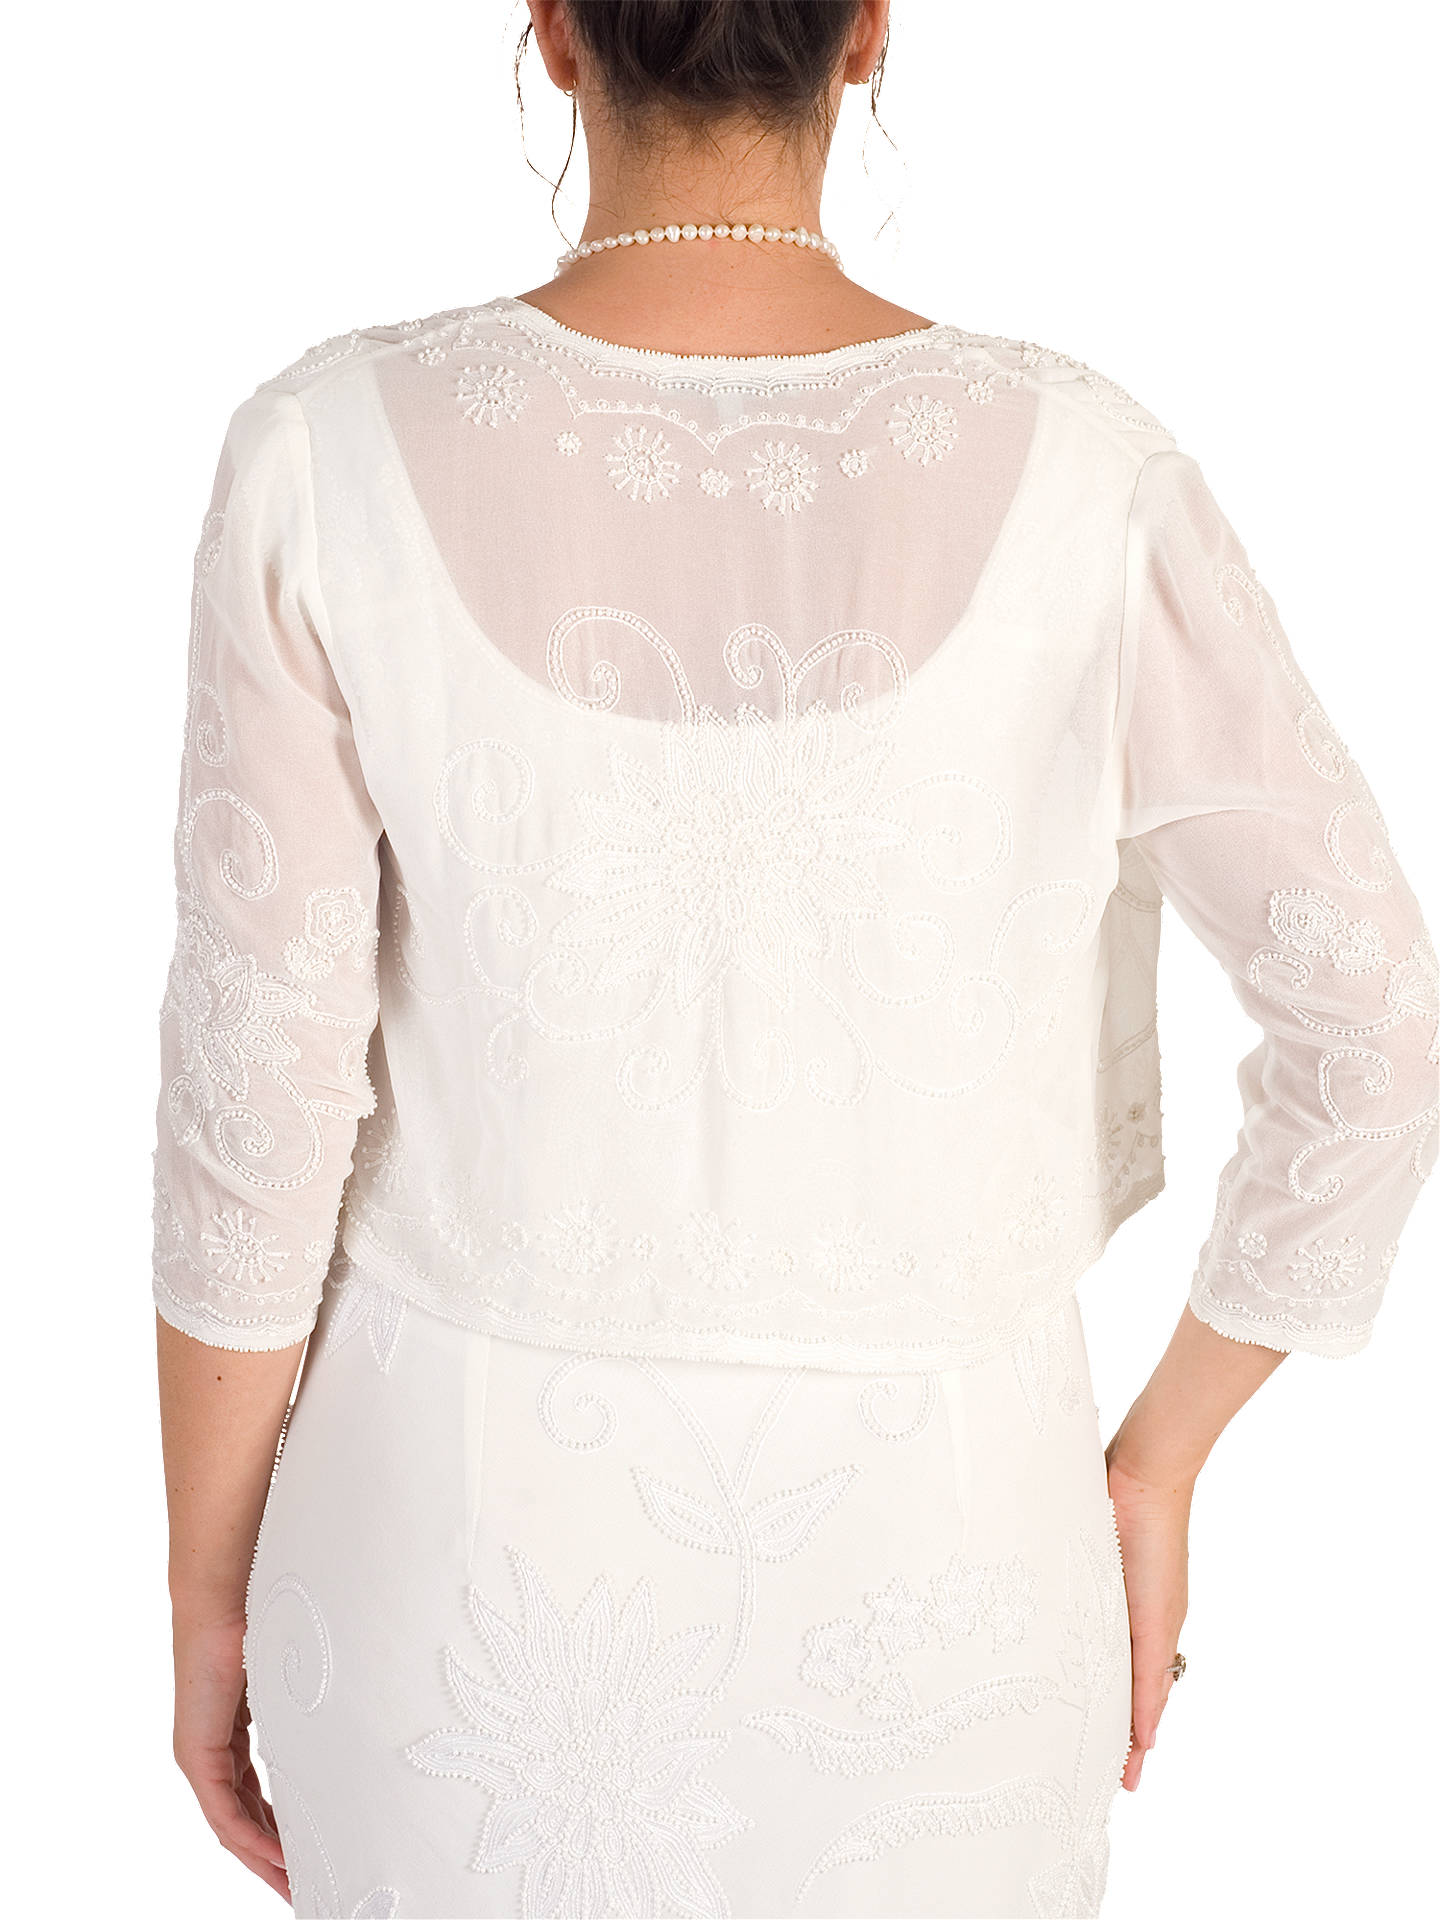 BuyChesca Embroidered Beaded Bridal Bolero, Ivory, 14 Online at johnlewis.com